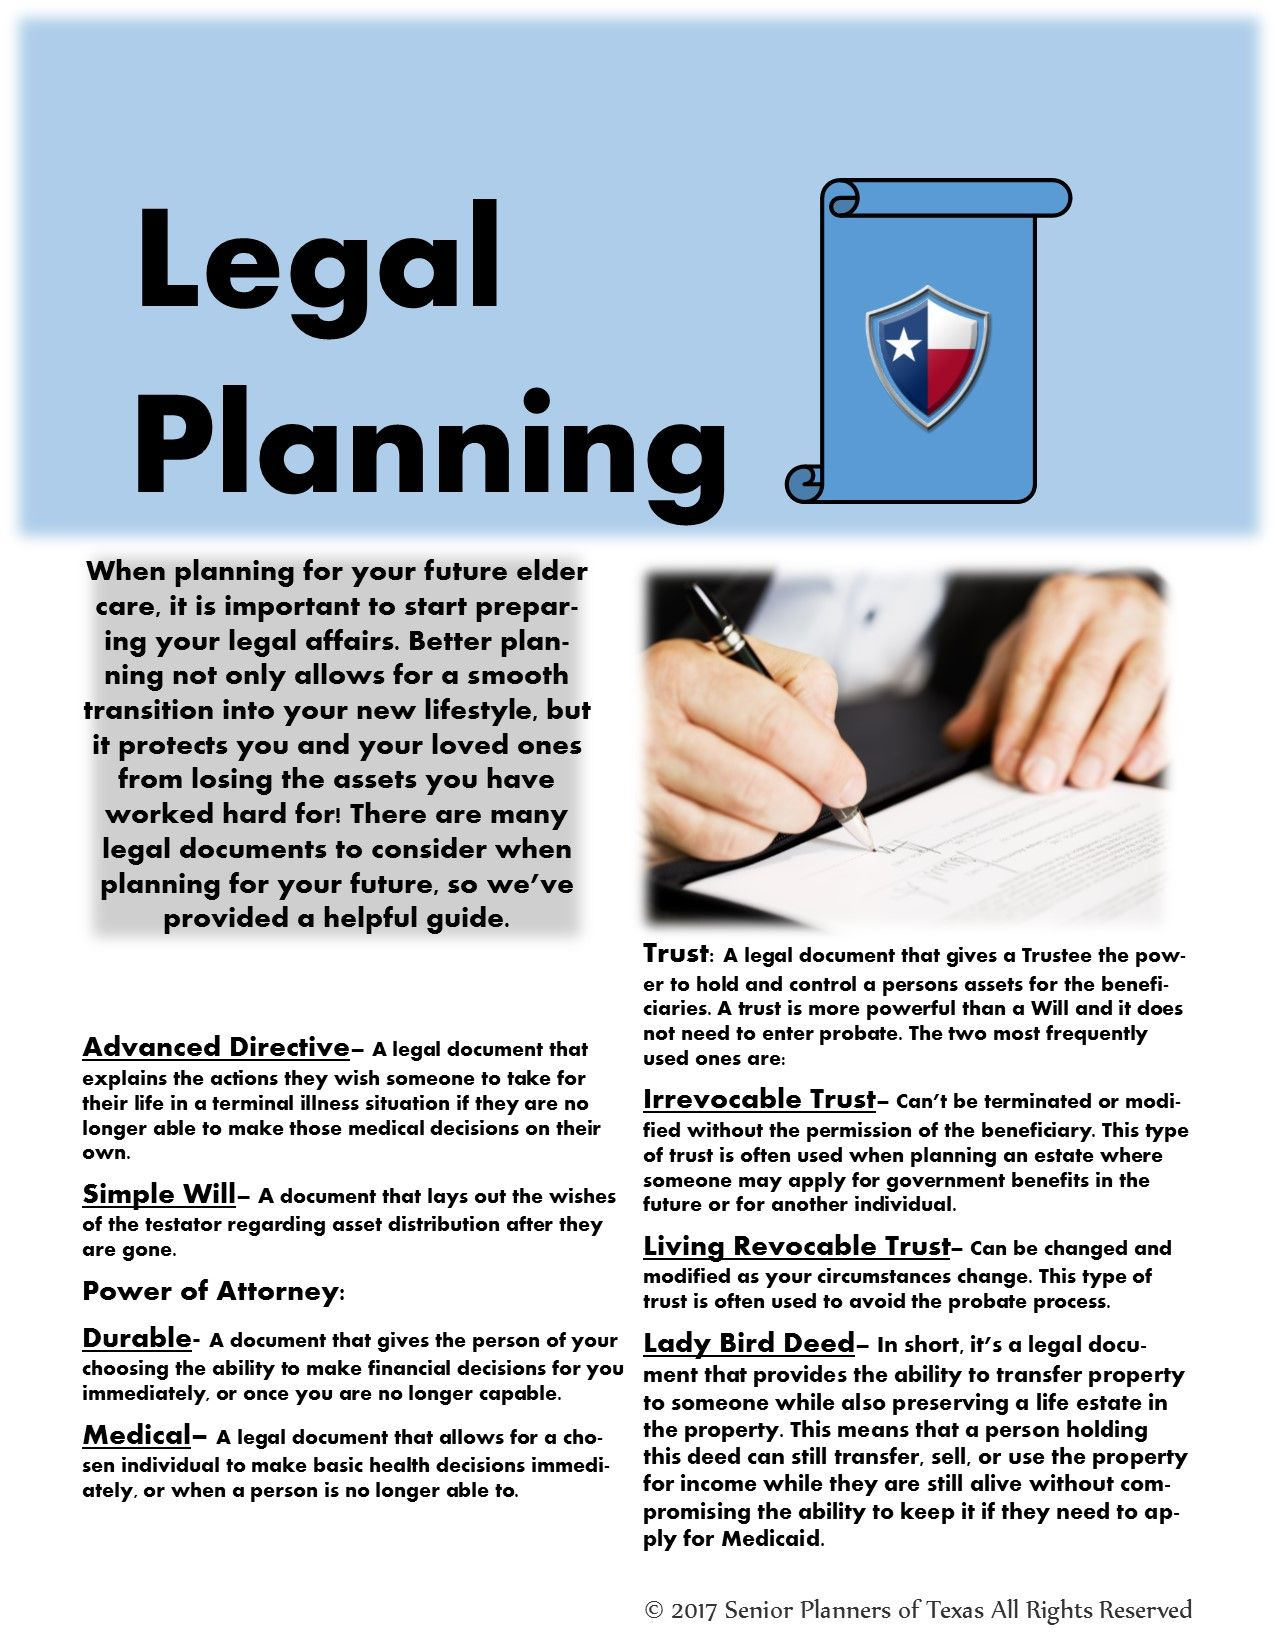 Need Financial Assistance For Your Elder Care Needs But Want To Protect The Assets You Ve Worked Hard For Here Is A He Senior Planner Elderly Care Legal Help